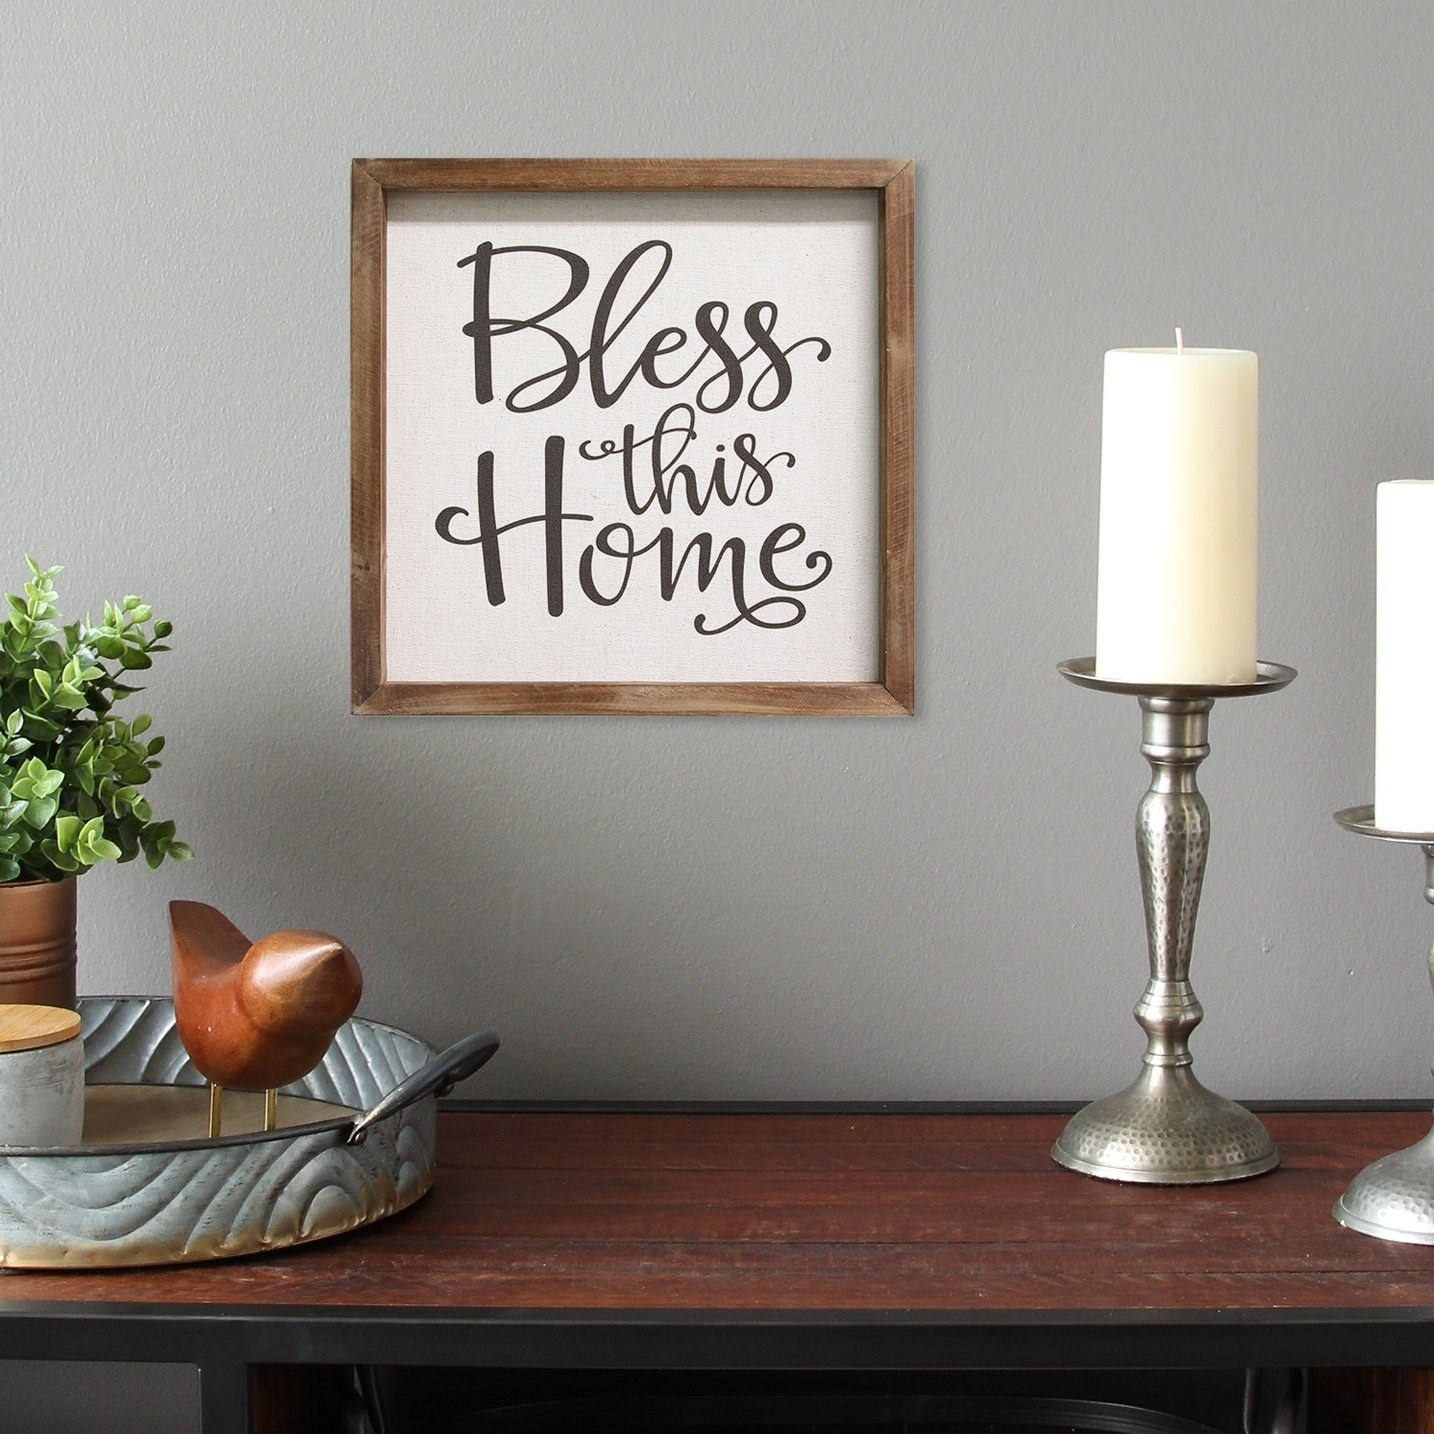 The sign in a wood frame hanging on a wall above an entryway table